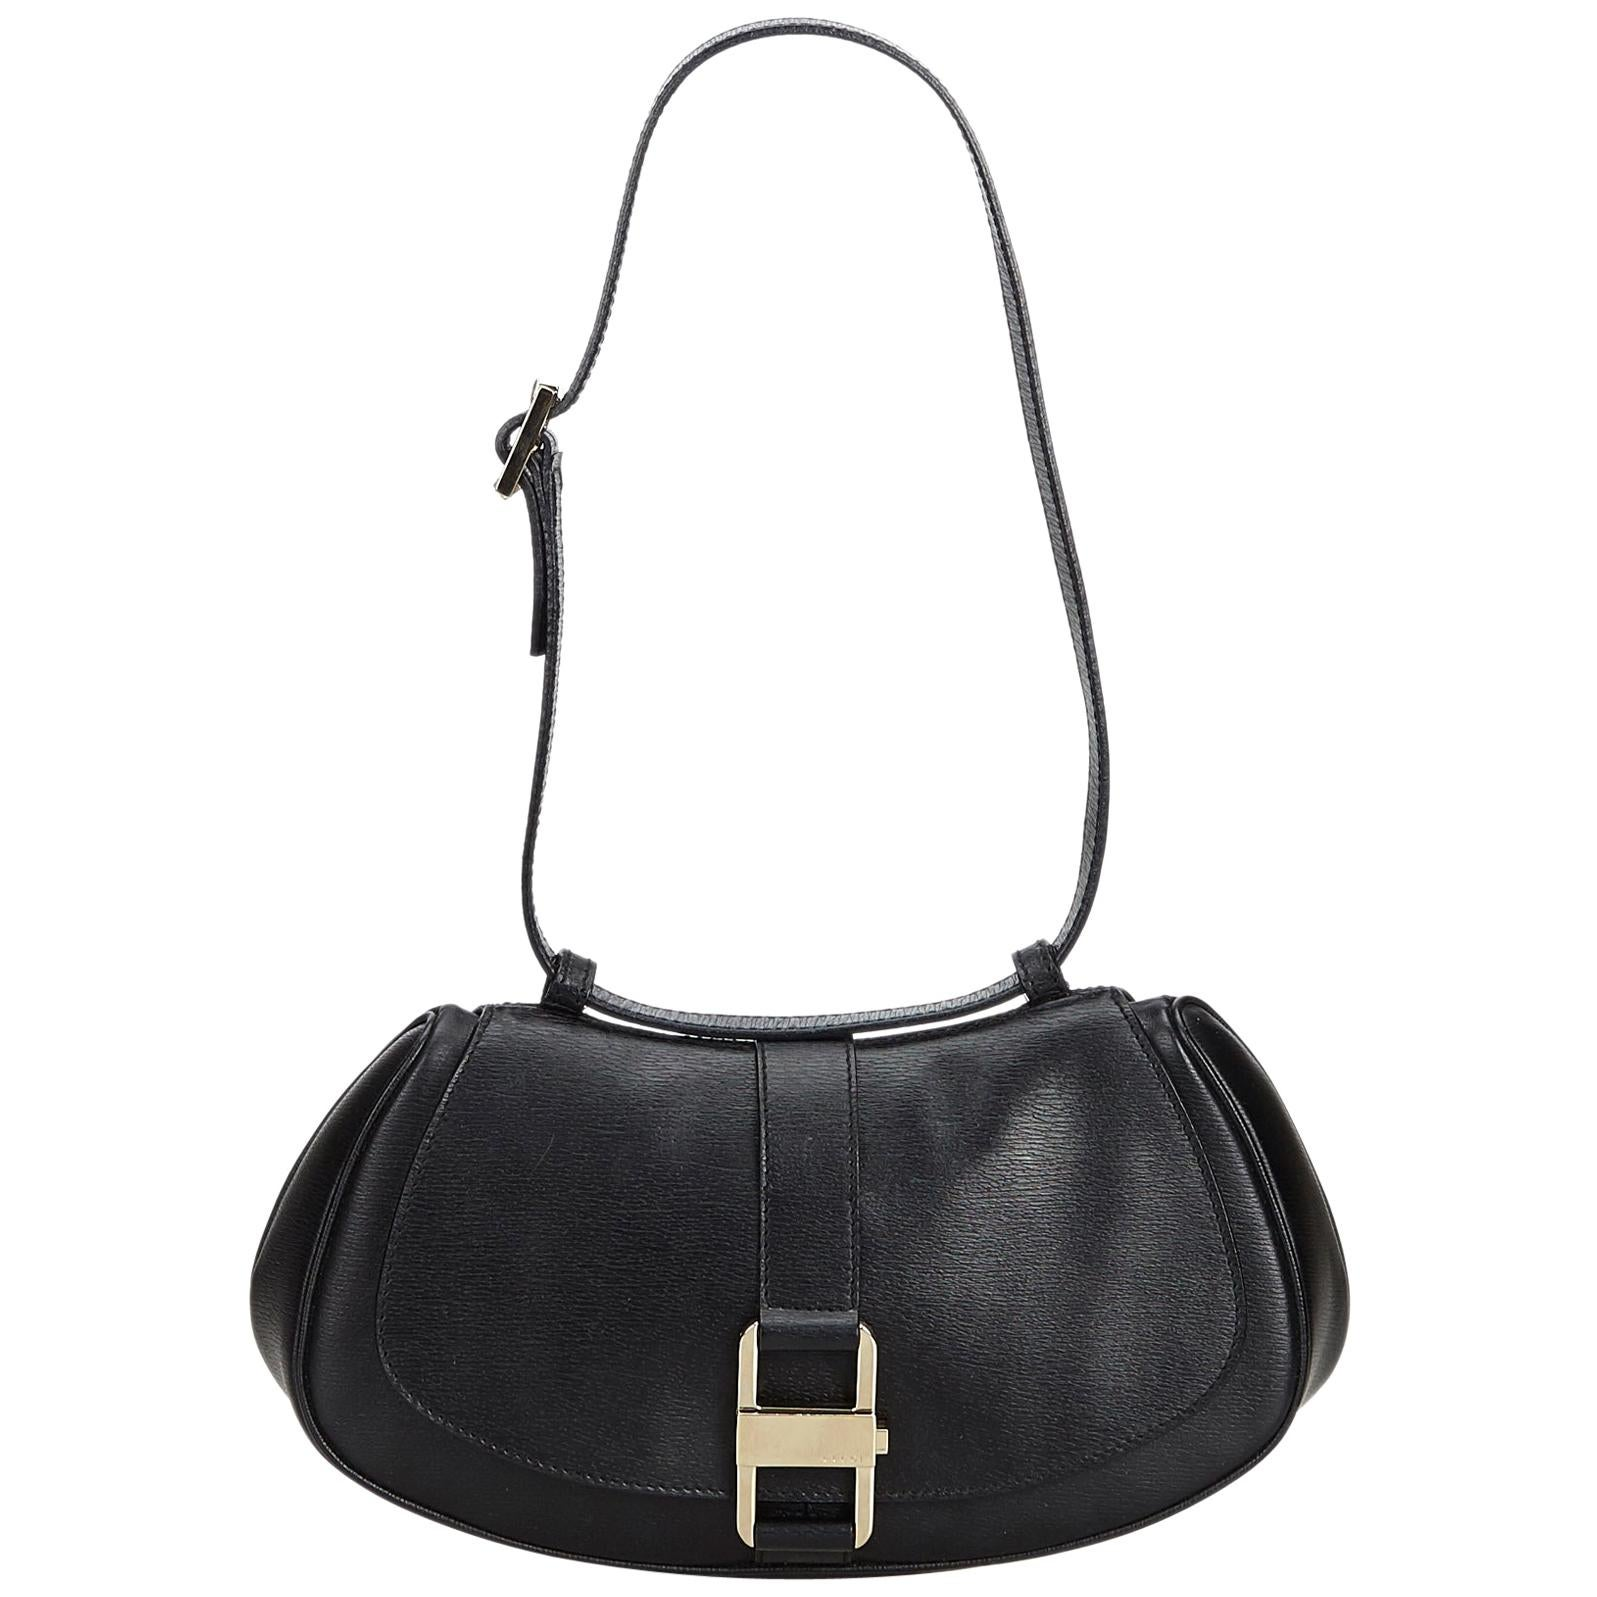 360d4efcd784 Vintage Gucci Handbags and Purses - 2,055 For Sale at 1stdibs